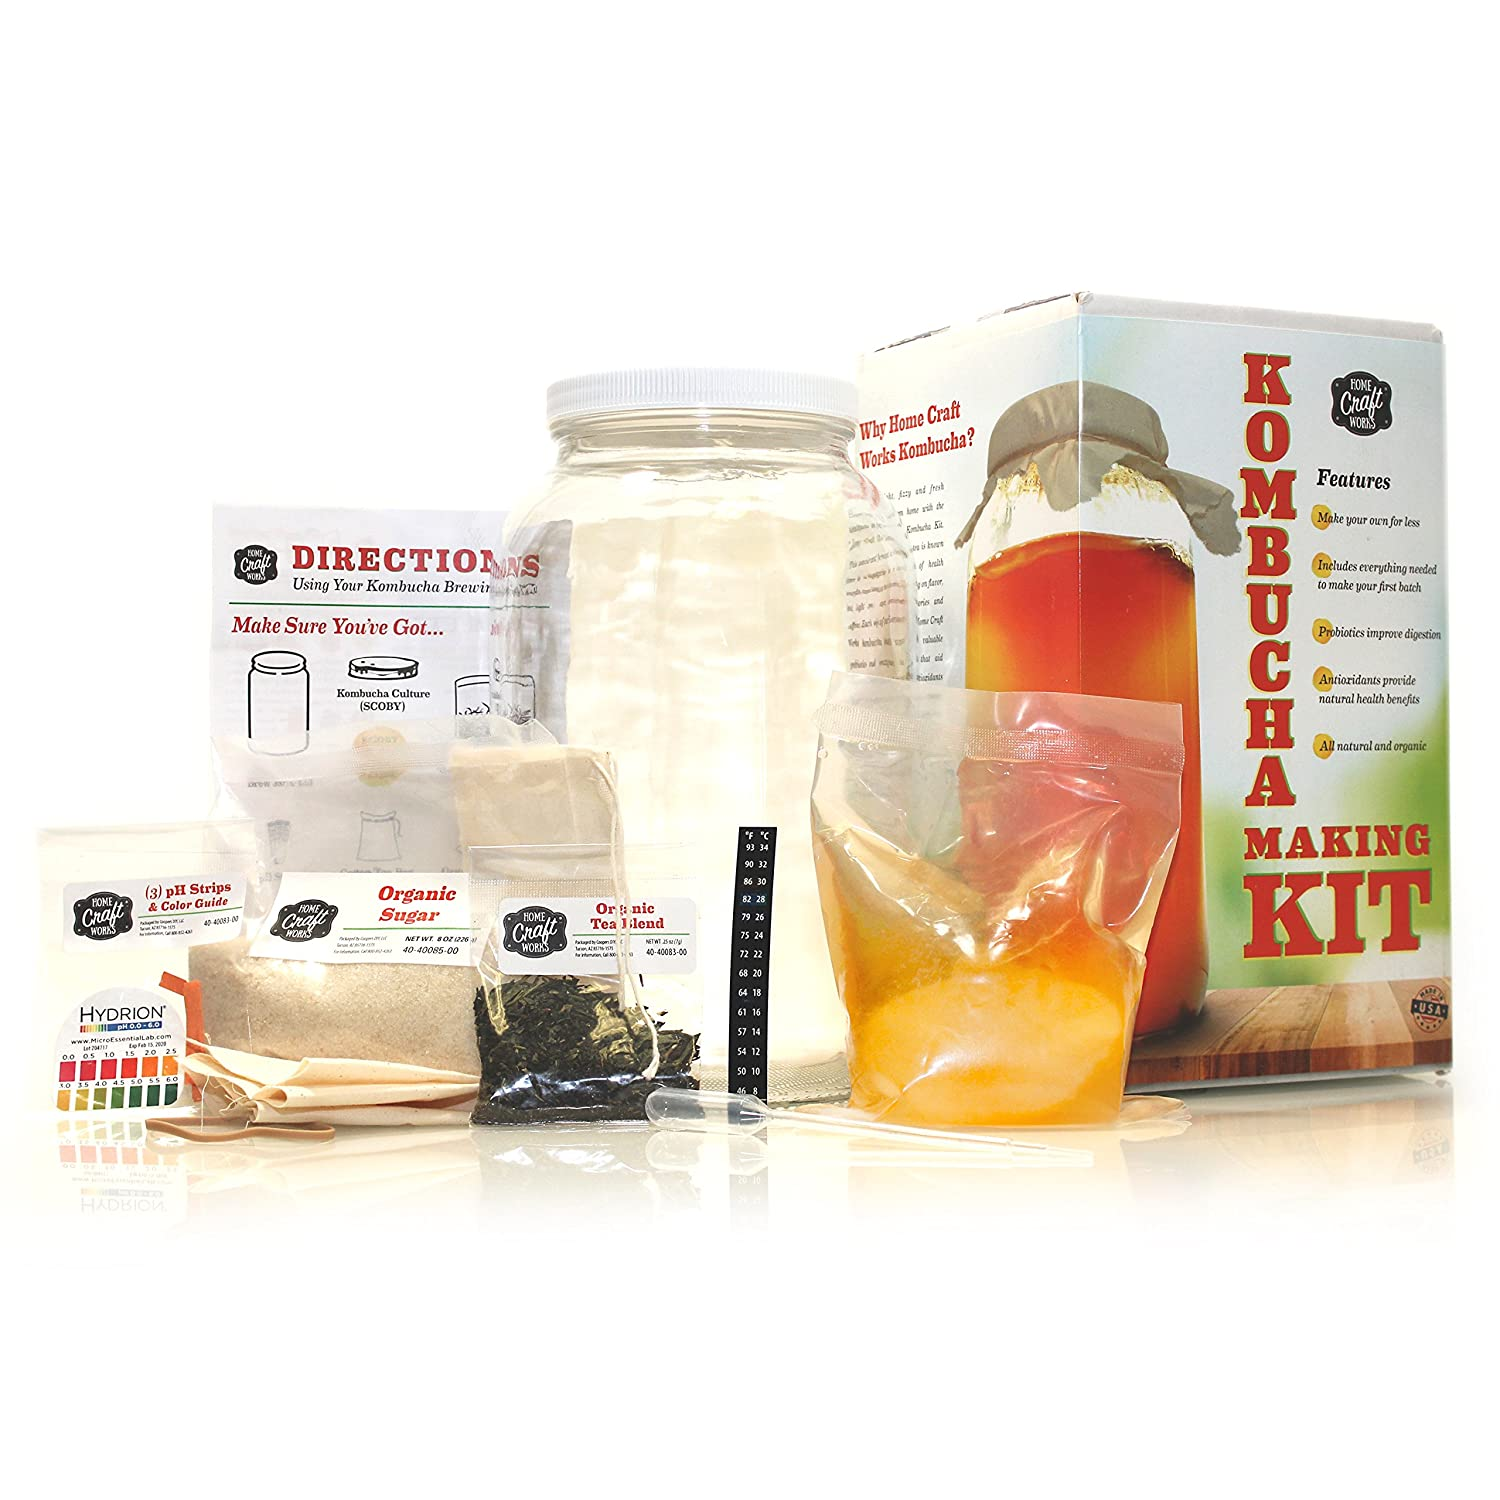 Home Craft Works Kombucha Brewing Kit Includes Organic Kombucha Scoby, Glass Brew Jar, Organic Loose Leaf Tea, Temperature Gauge, Organic Sugar, pH strips, cotton tea bag, and organic cotton cover 20080